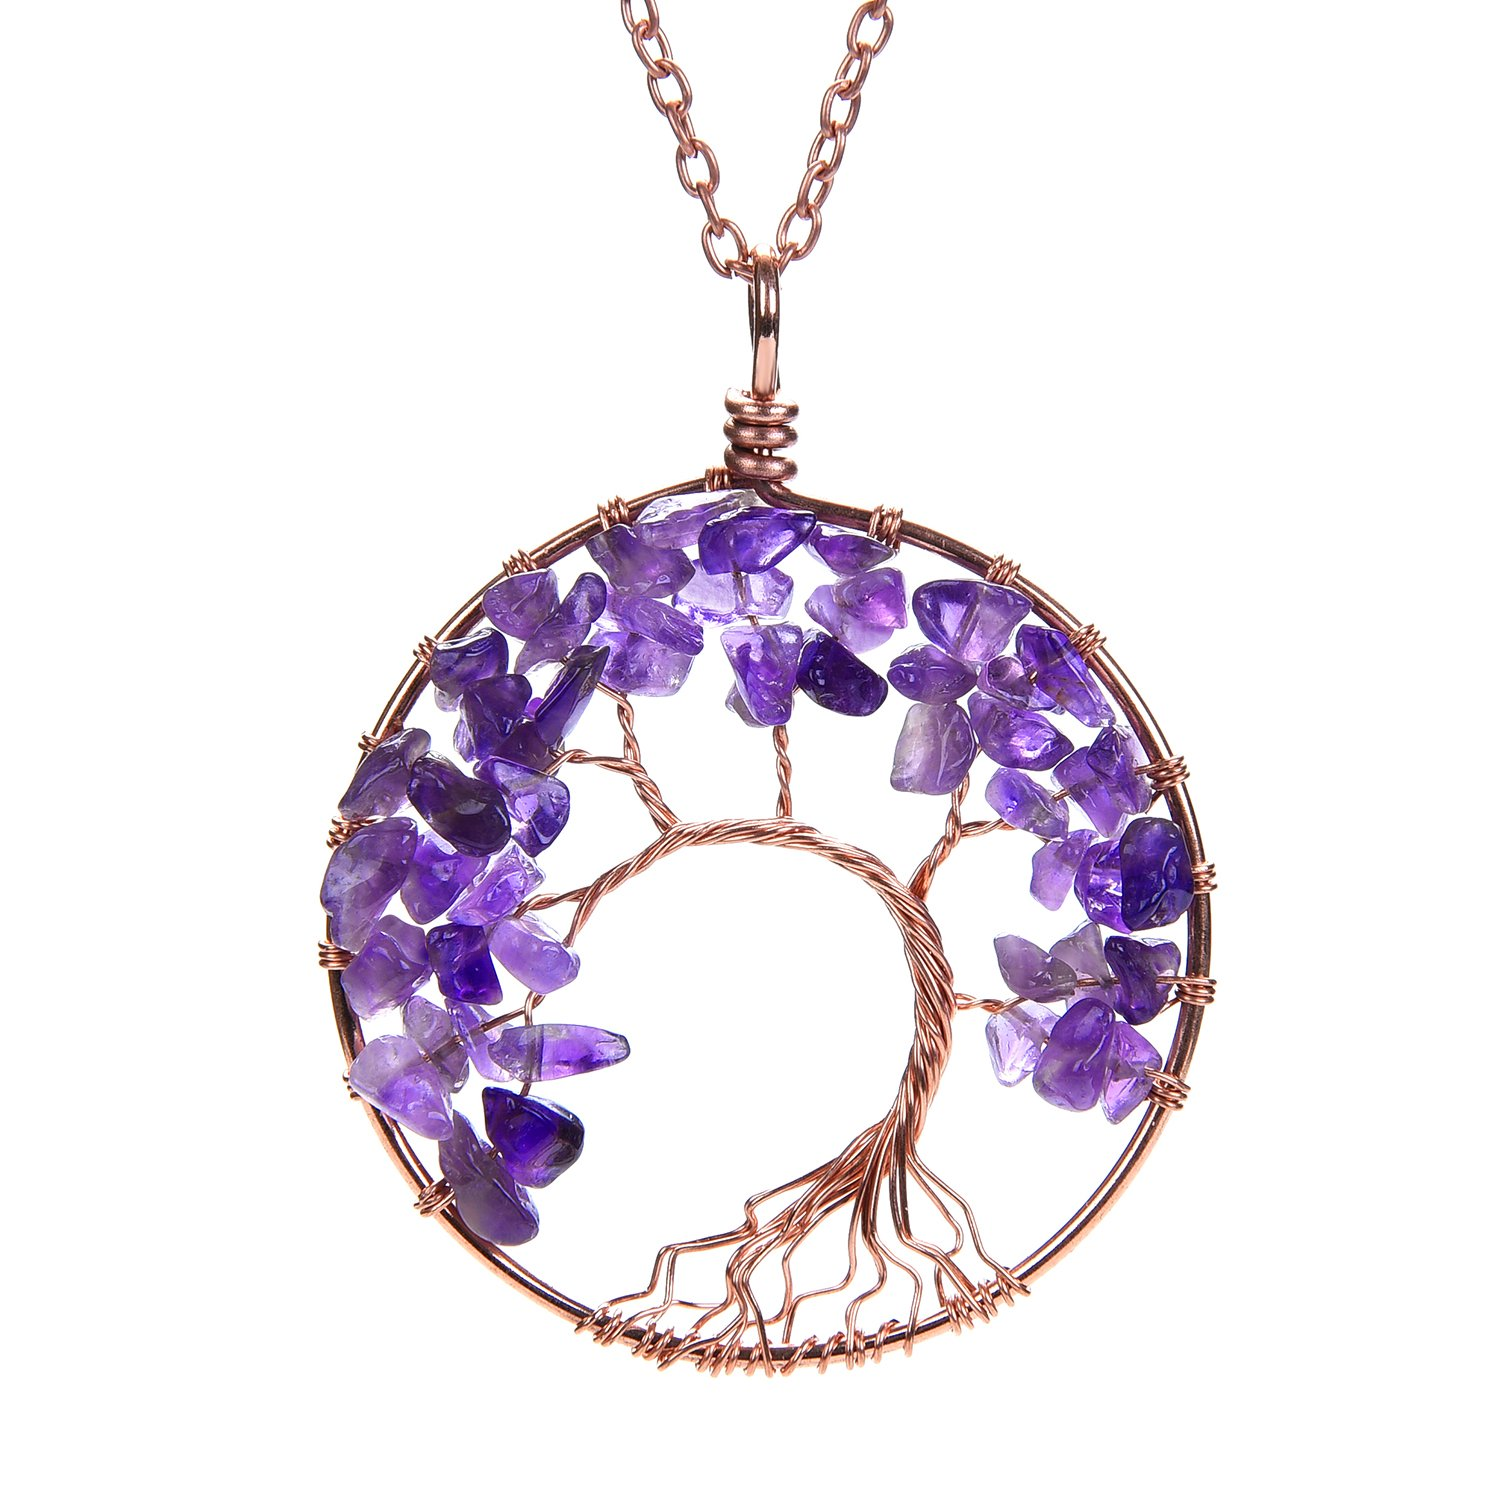 APURSUE Amethyst Crooked Copper Necklace Tree Of Life Pendant Necklace with 2 Chains + 2 Waxed Cotton Cord, Nature Stone Handmade Amethyst Crystal Necklace Gemstone Chakra Jewelry Women Valentine's